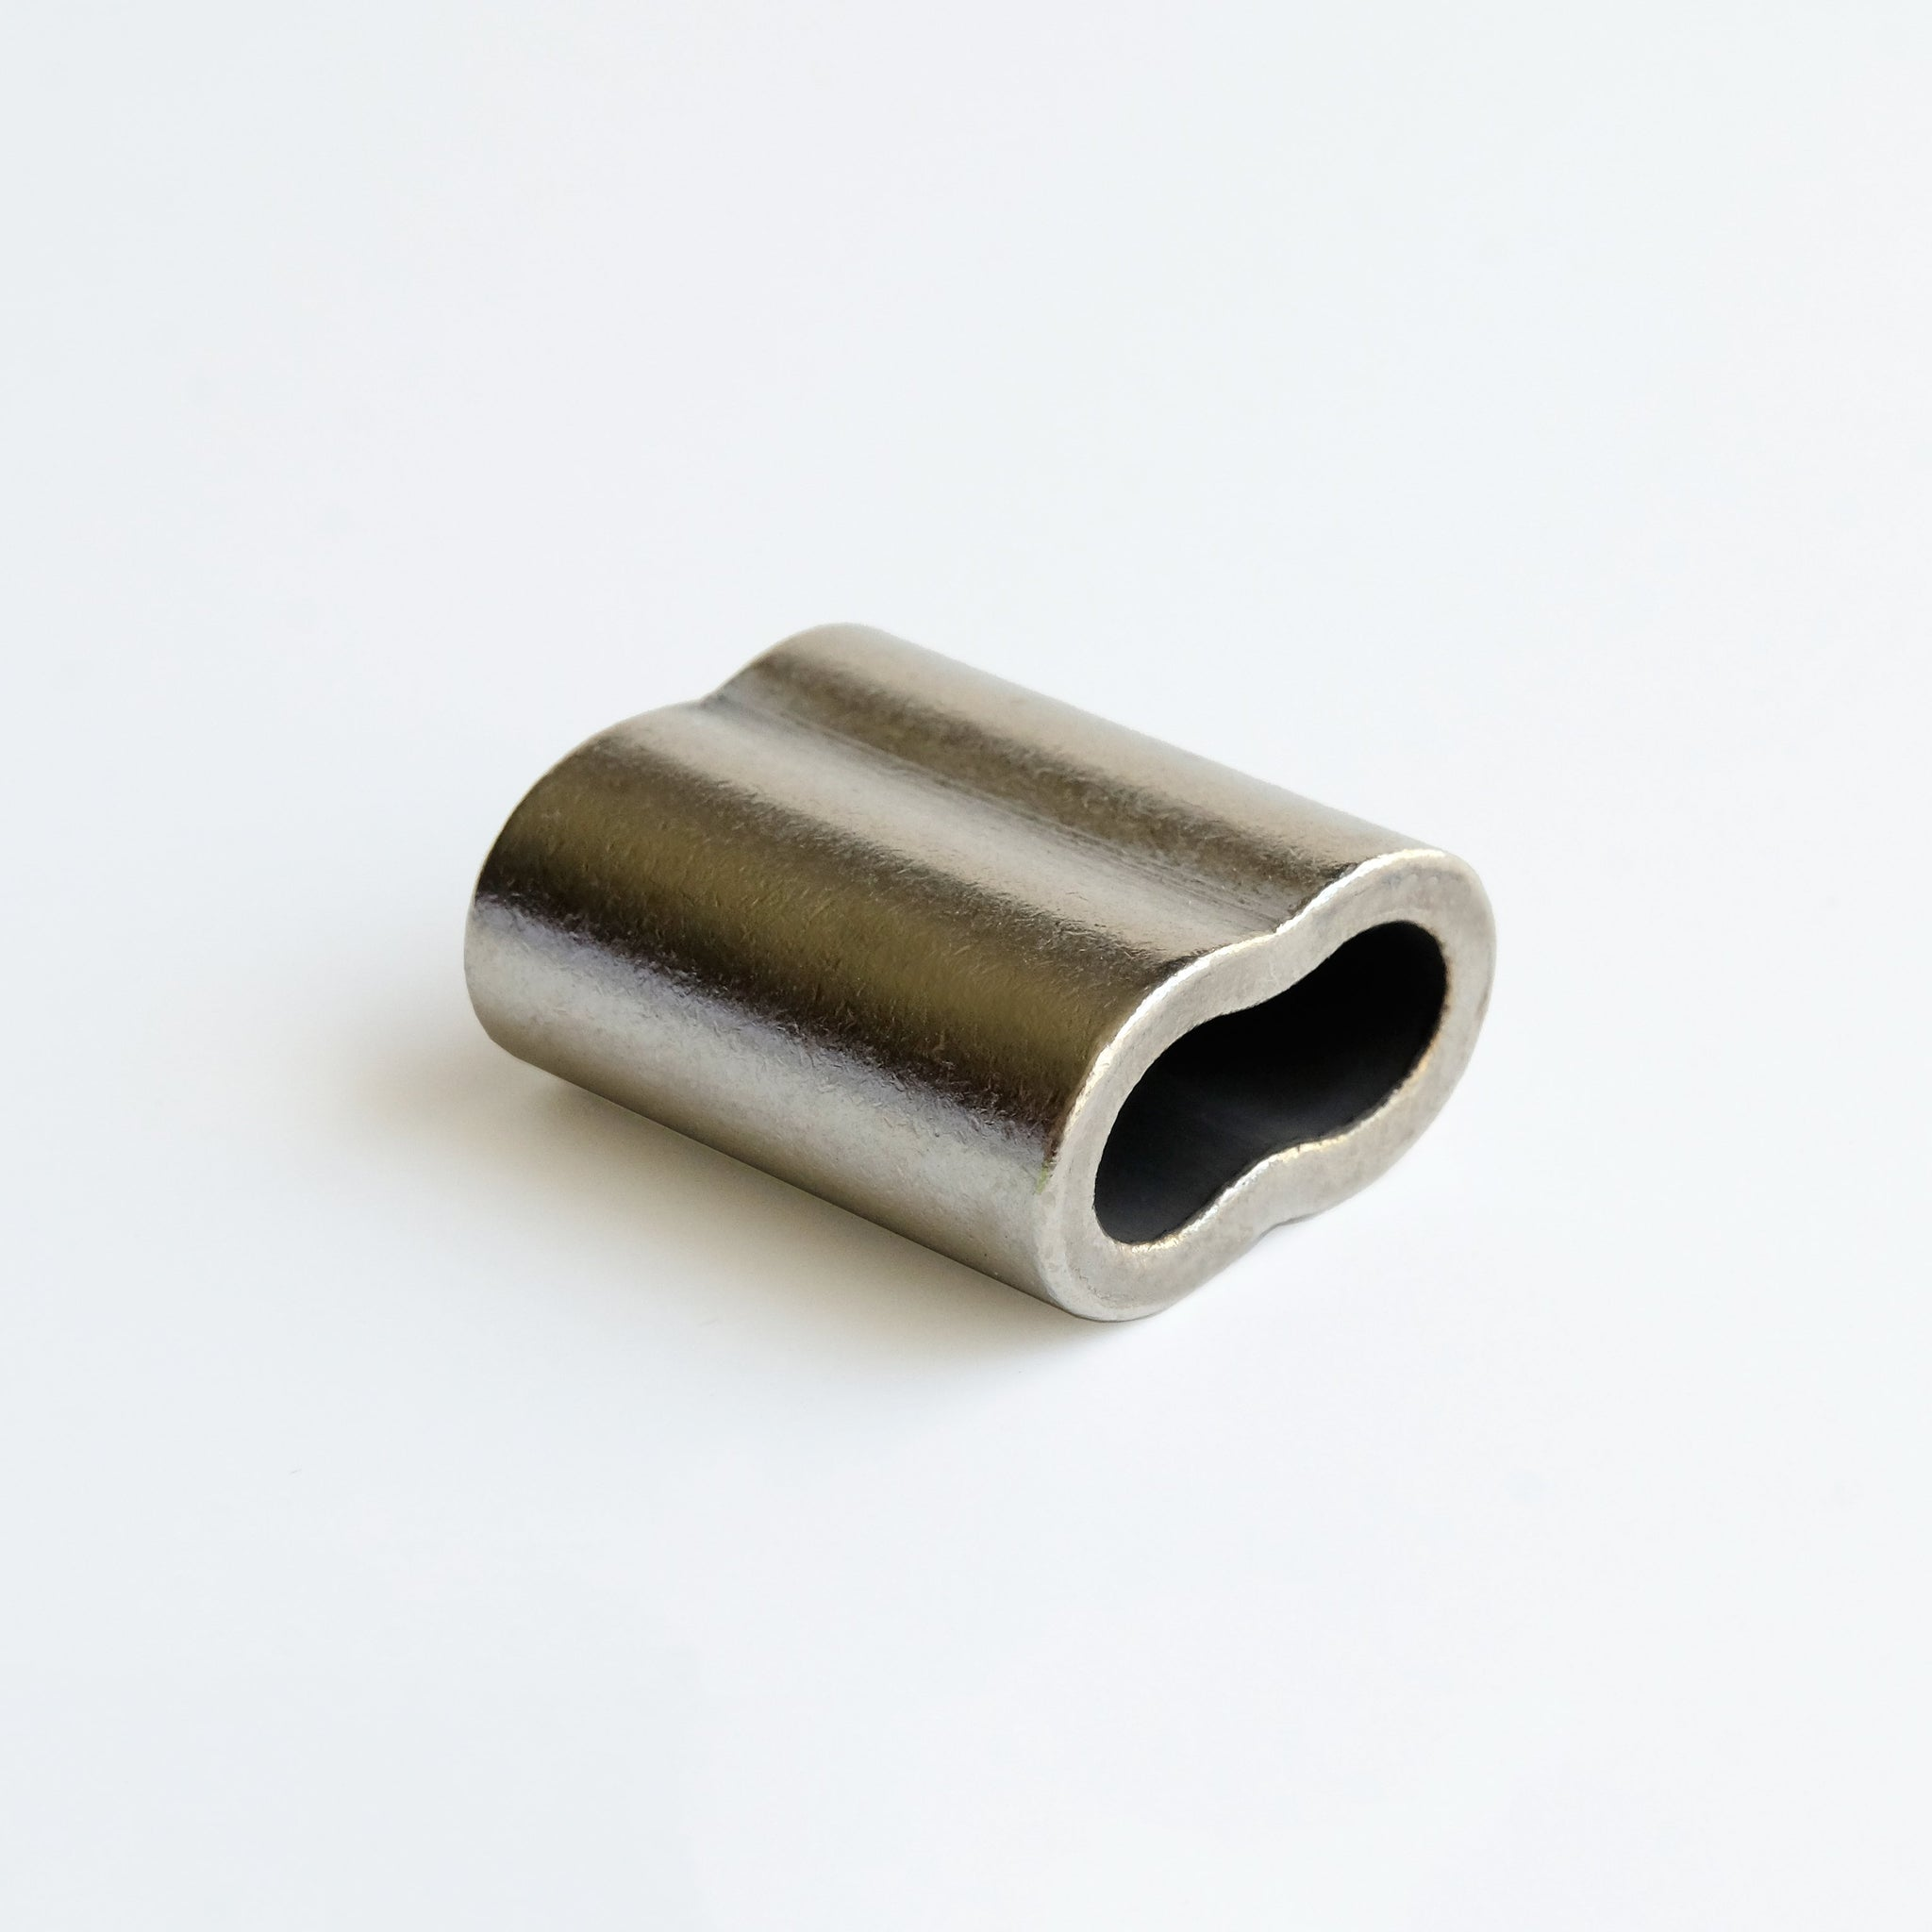 NS-4.8 (Nickel swage - 4.8mm Wire rope)